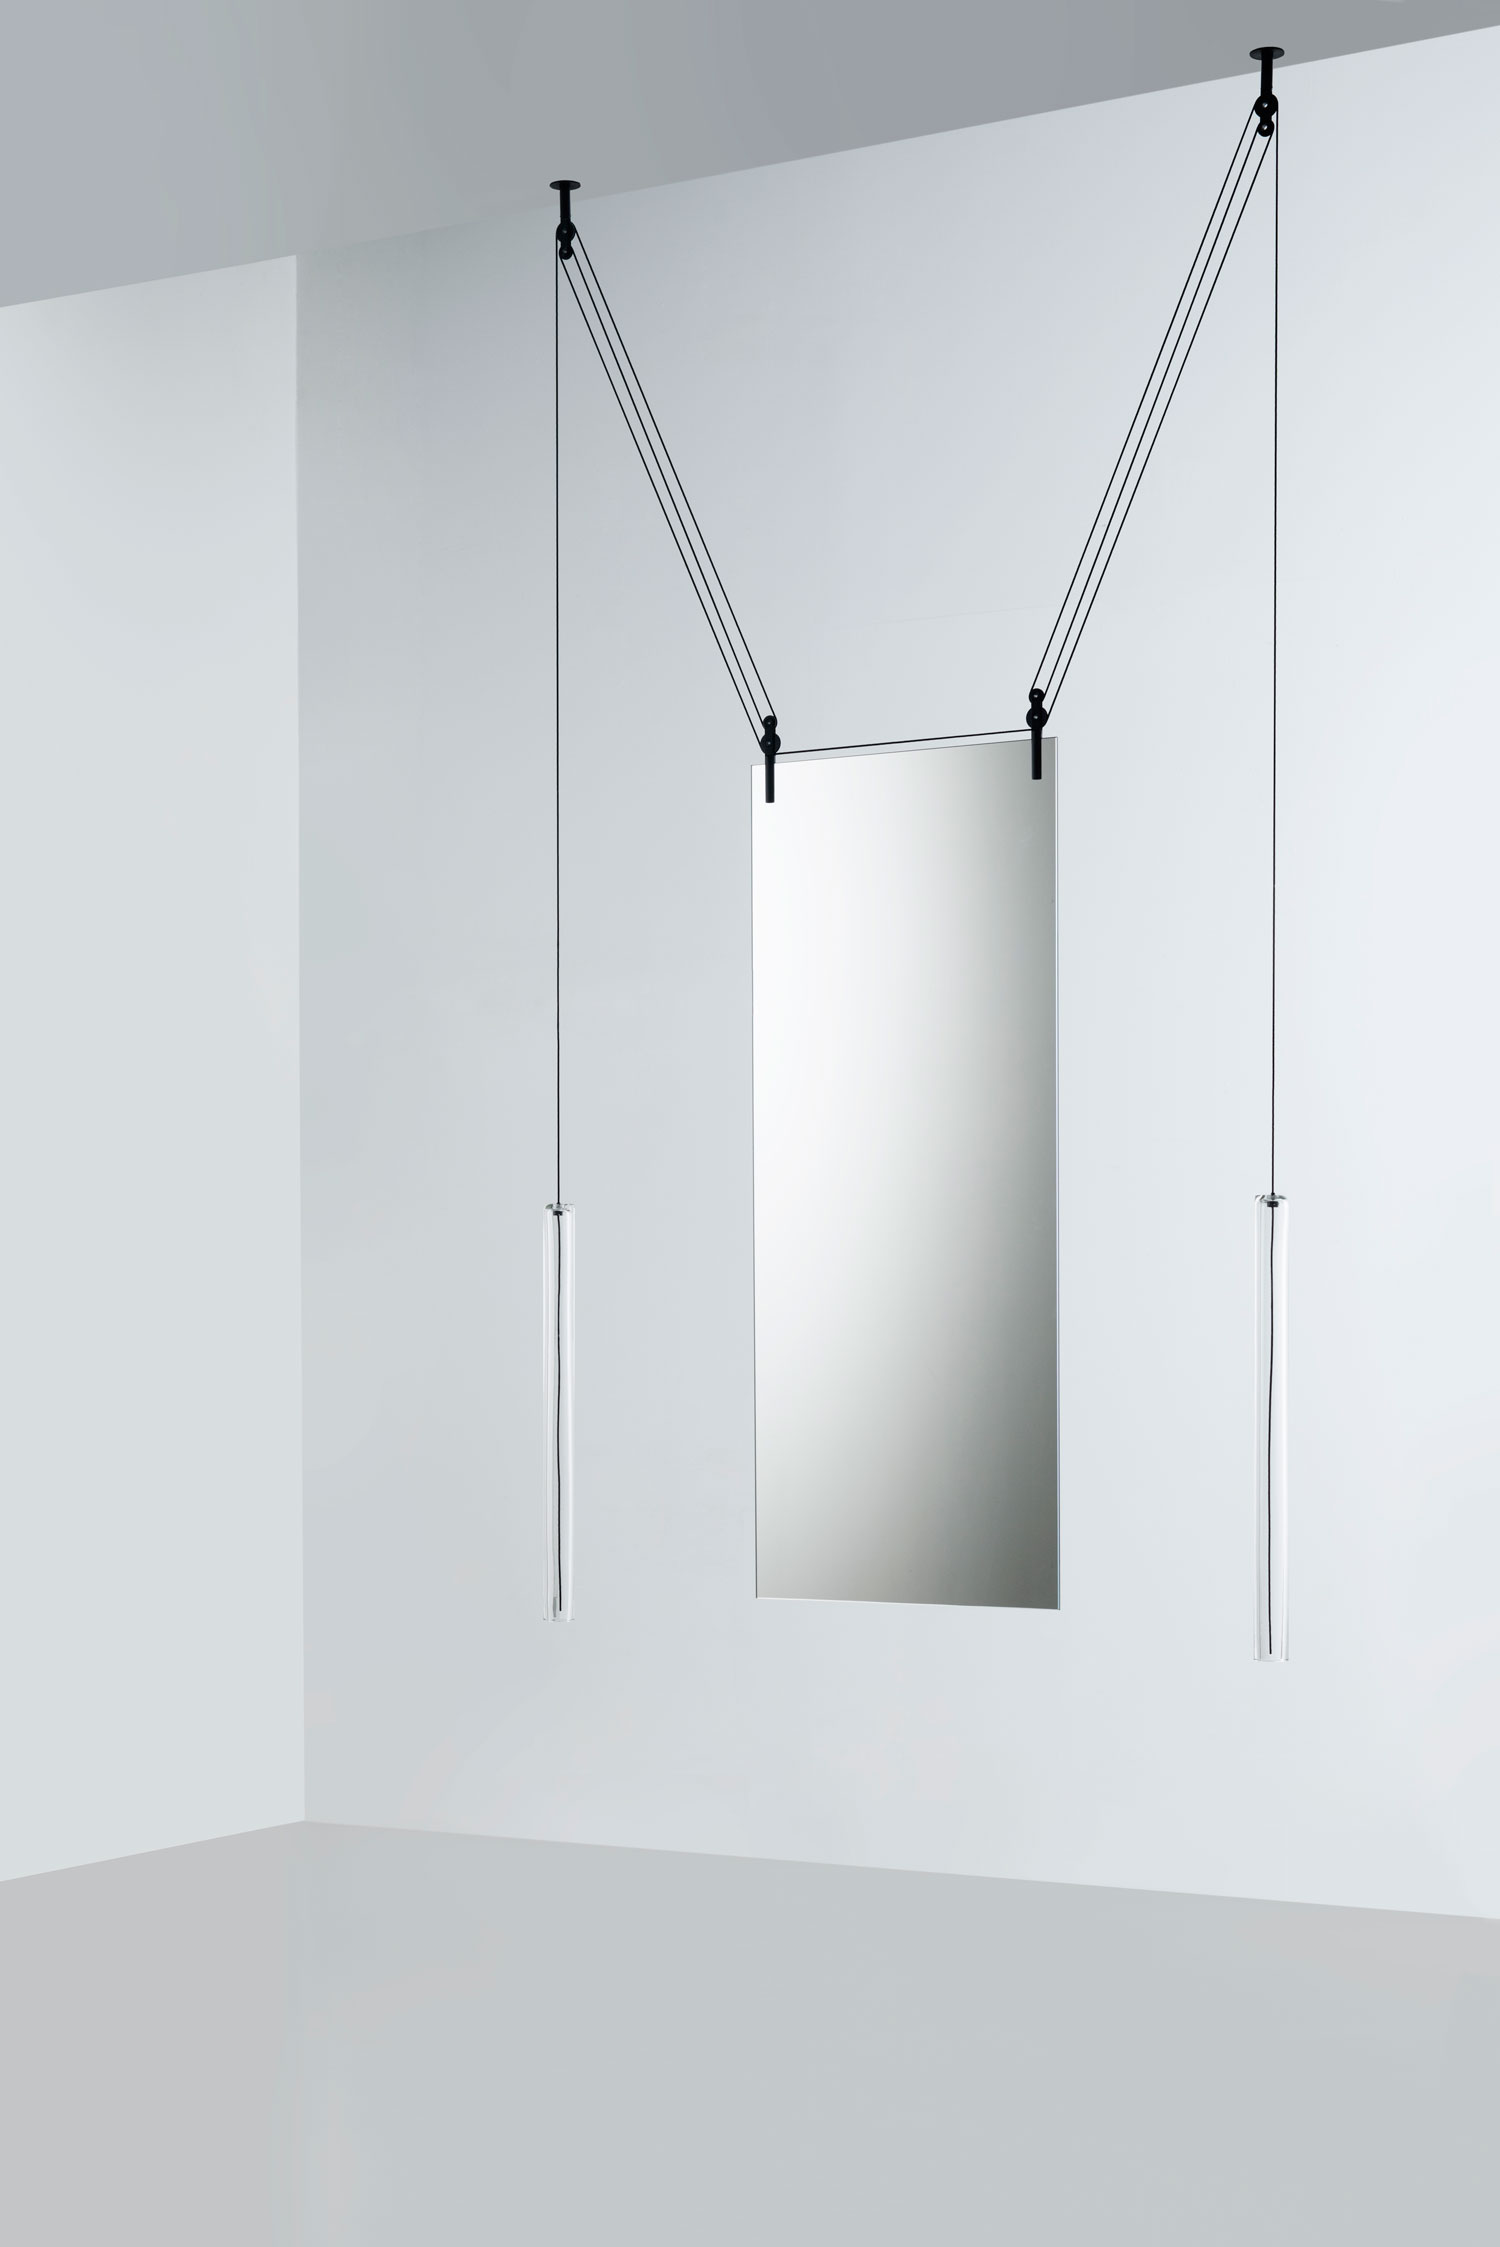 Glas Italia PALANCO Mirror by The Bouroullecs - Best of Salone Del Mobile 2015   Yellowtrace